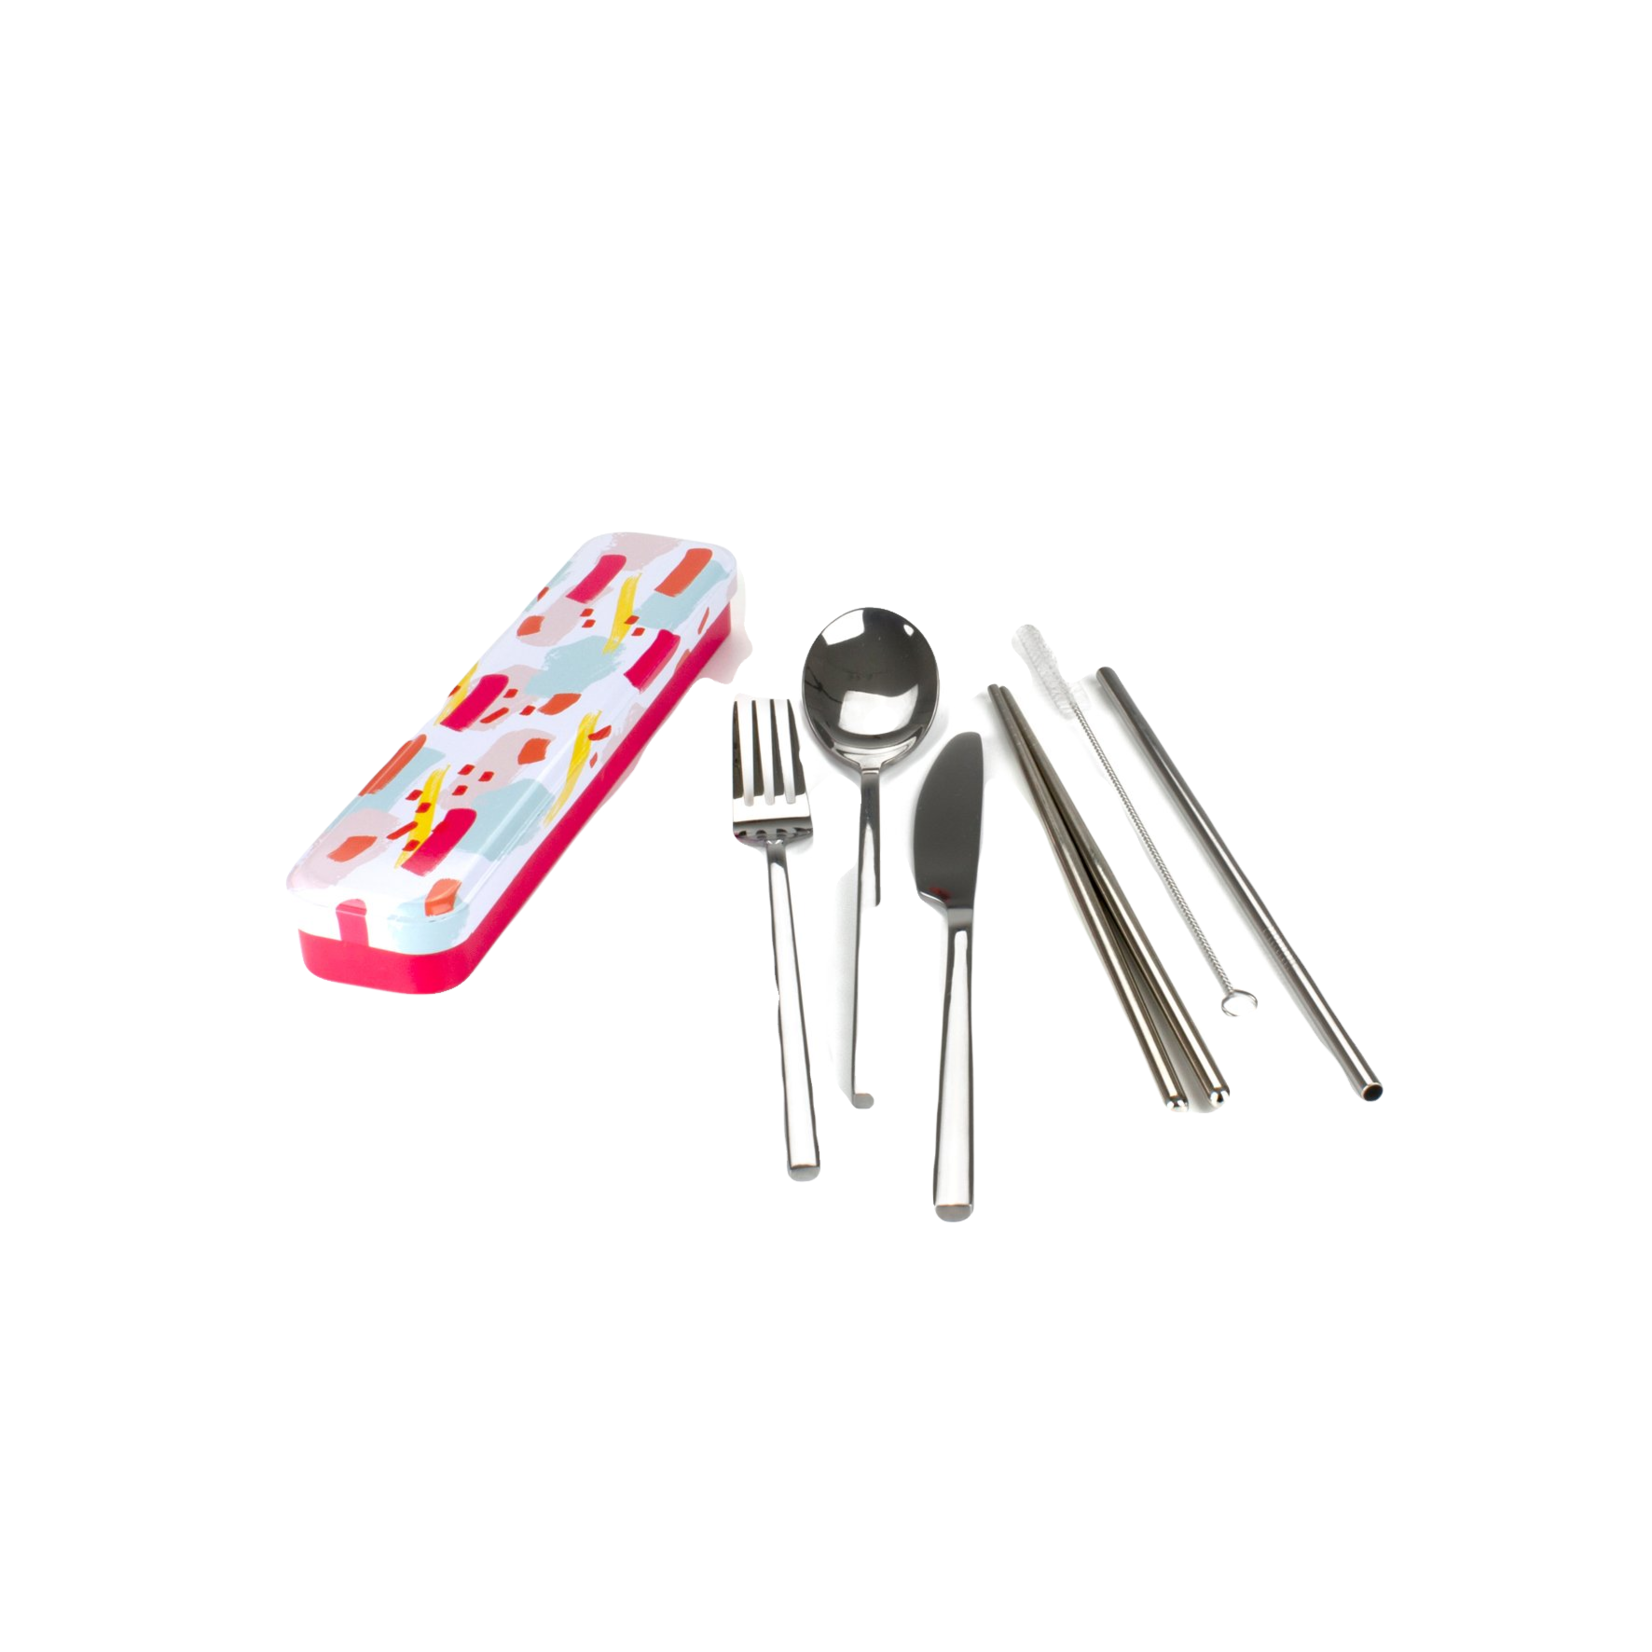 Retro Kitchen Retro Kitchen Carry Your Cutlery